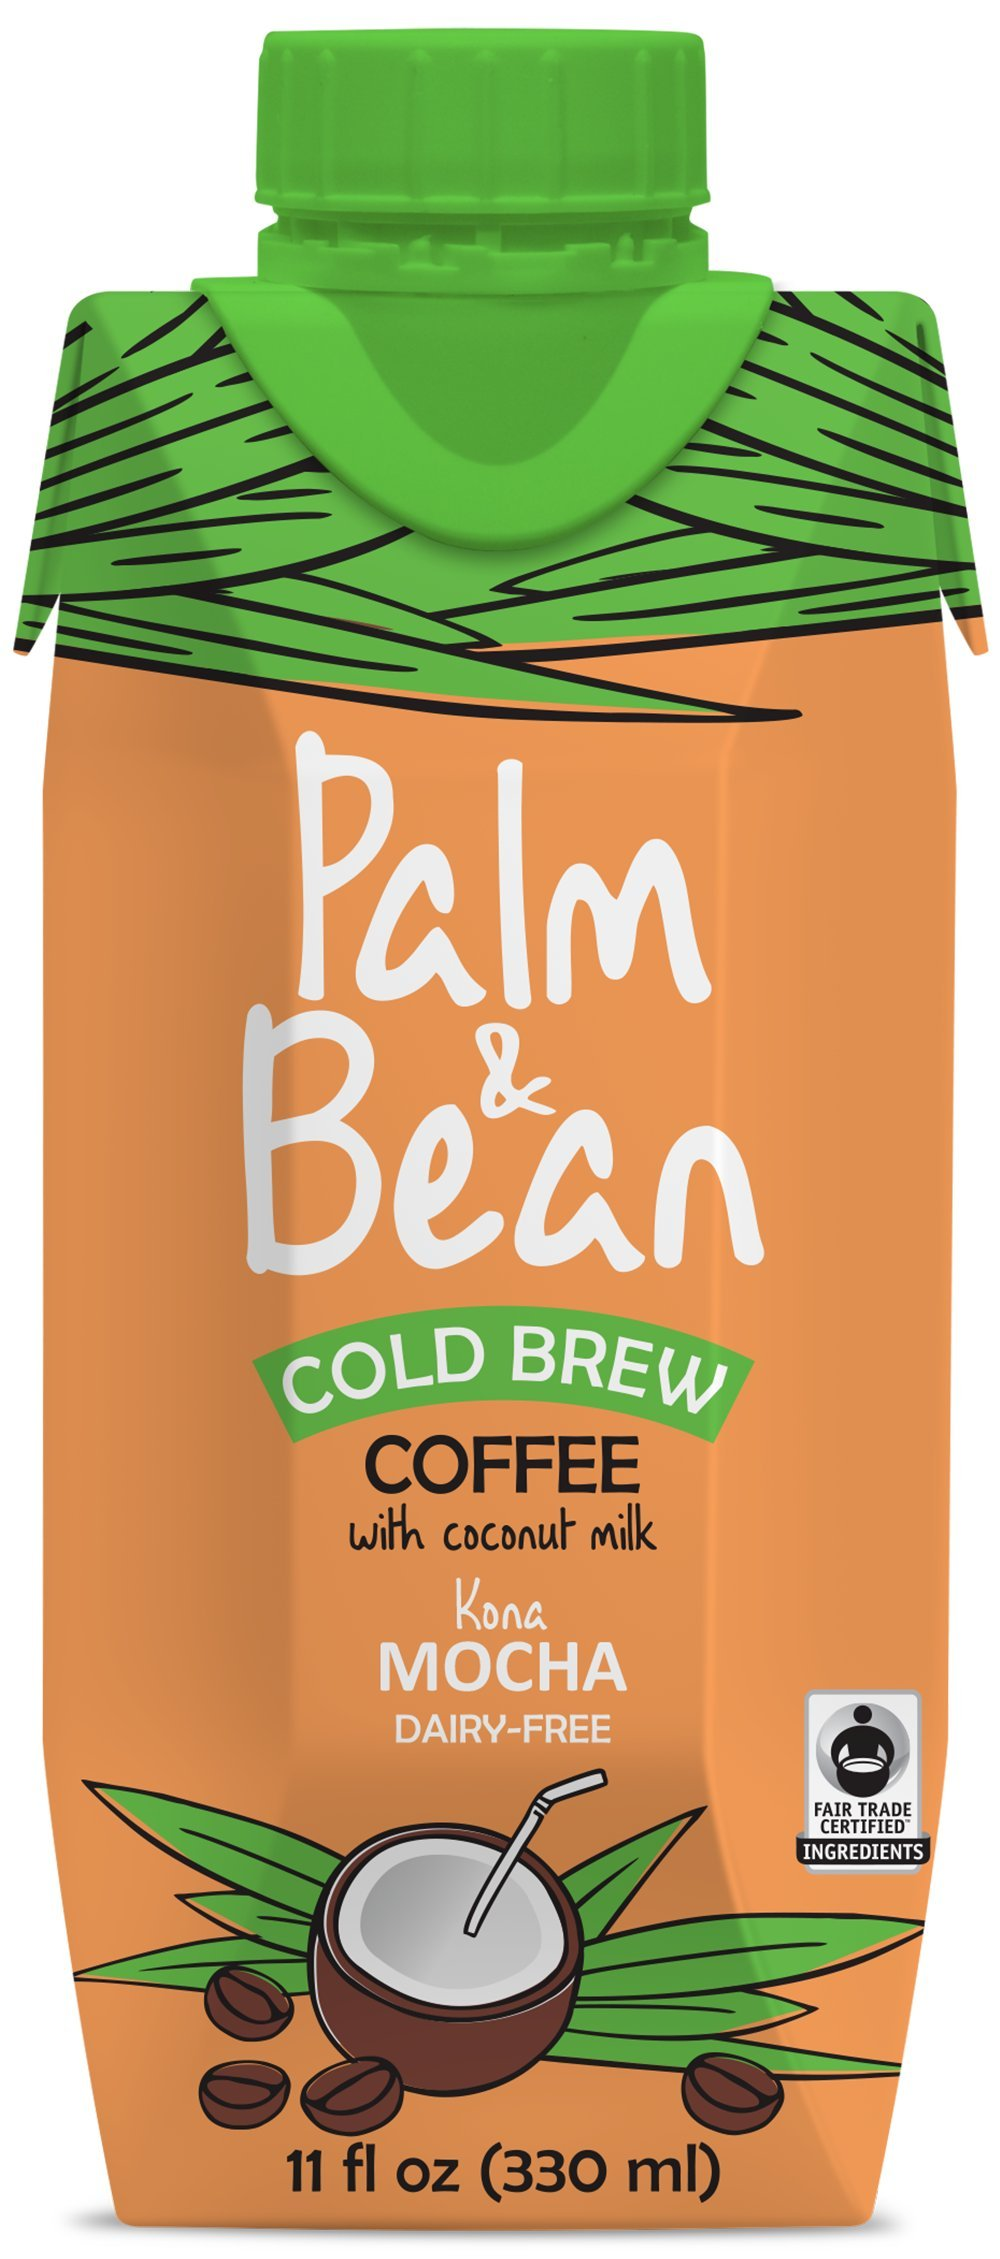 Cold Brew Coffee - Palm & Bean: Kona Mocha - Cold Brew + Coconut Milk - 12 Pack - Dairy Free - Smooth and Creamy Texture - Exquisitely Indulgent Coffee Notes - No Refrigeration Required